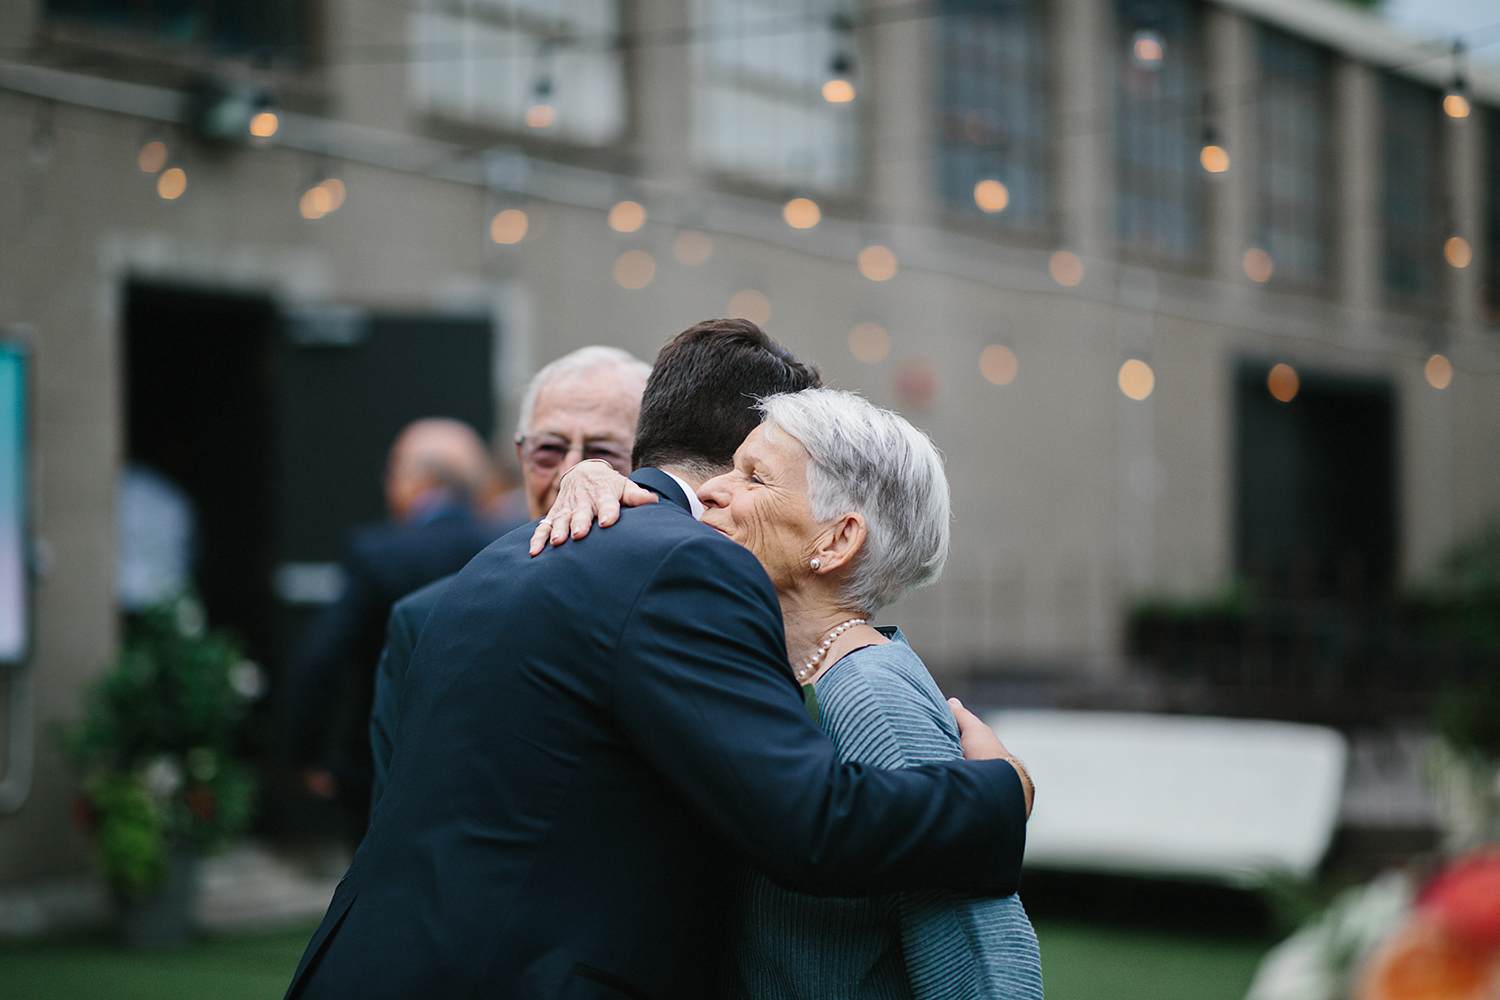 torontos-best-documentary-wedding-photographers-ryanne-hollies-photography-fine-art-photojournalism-artistic-moody-creative-inspiration-downtown-toronto-airship37-venue-modern-hipster-cocktail-hour-groom-hugging-his-new-grandma.jpg